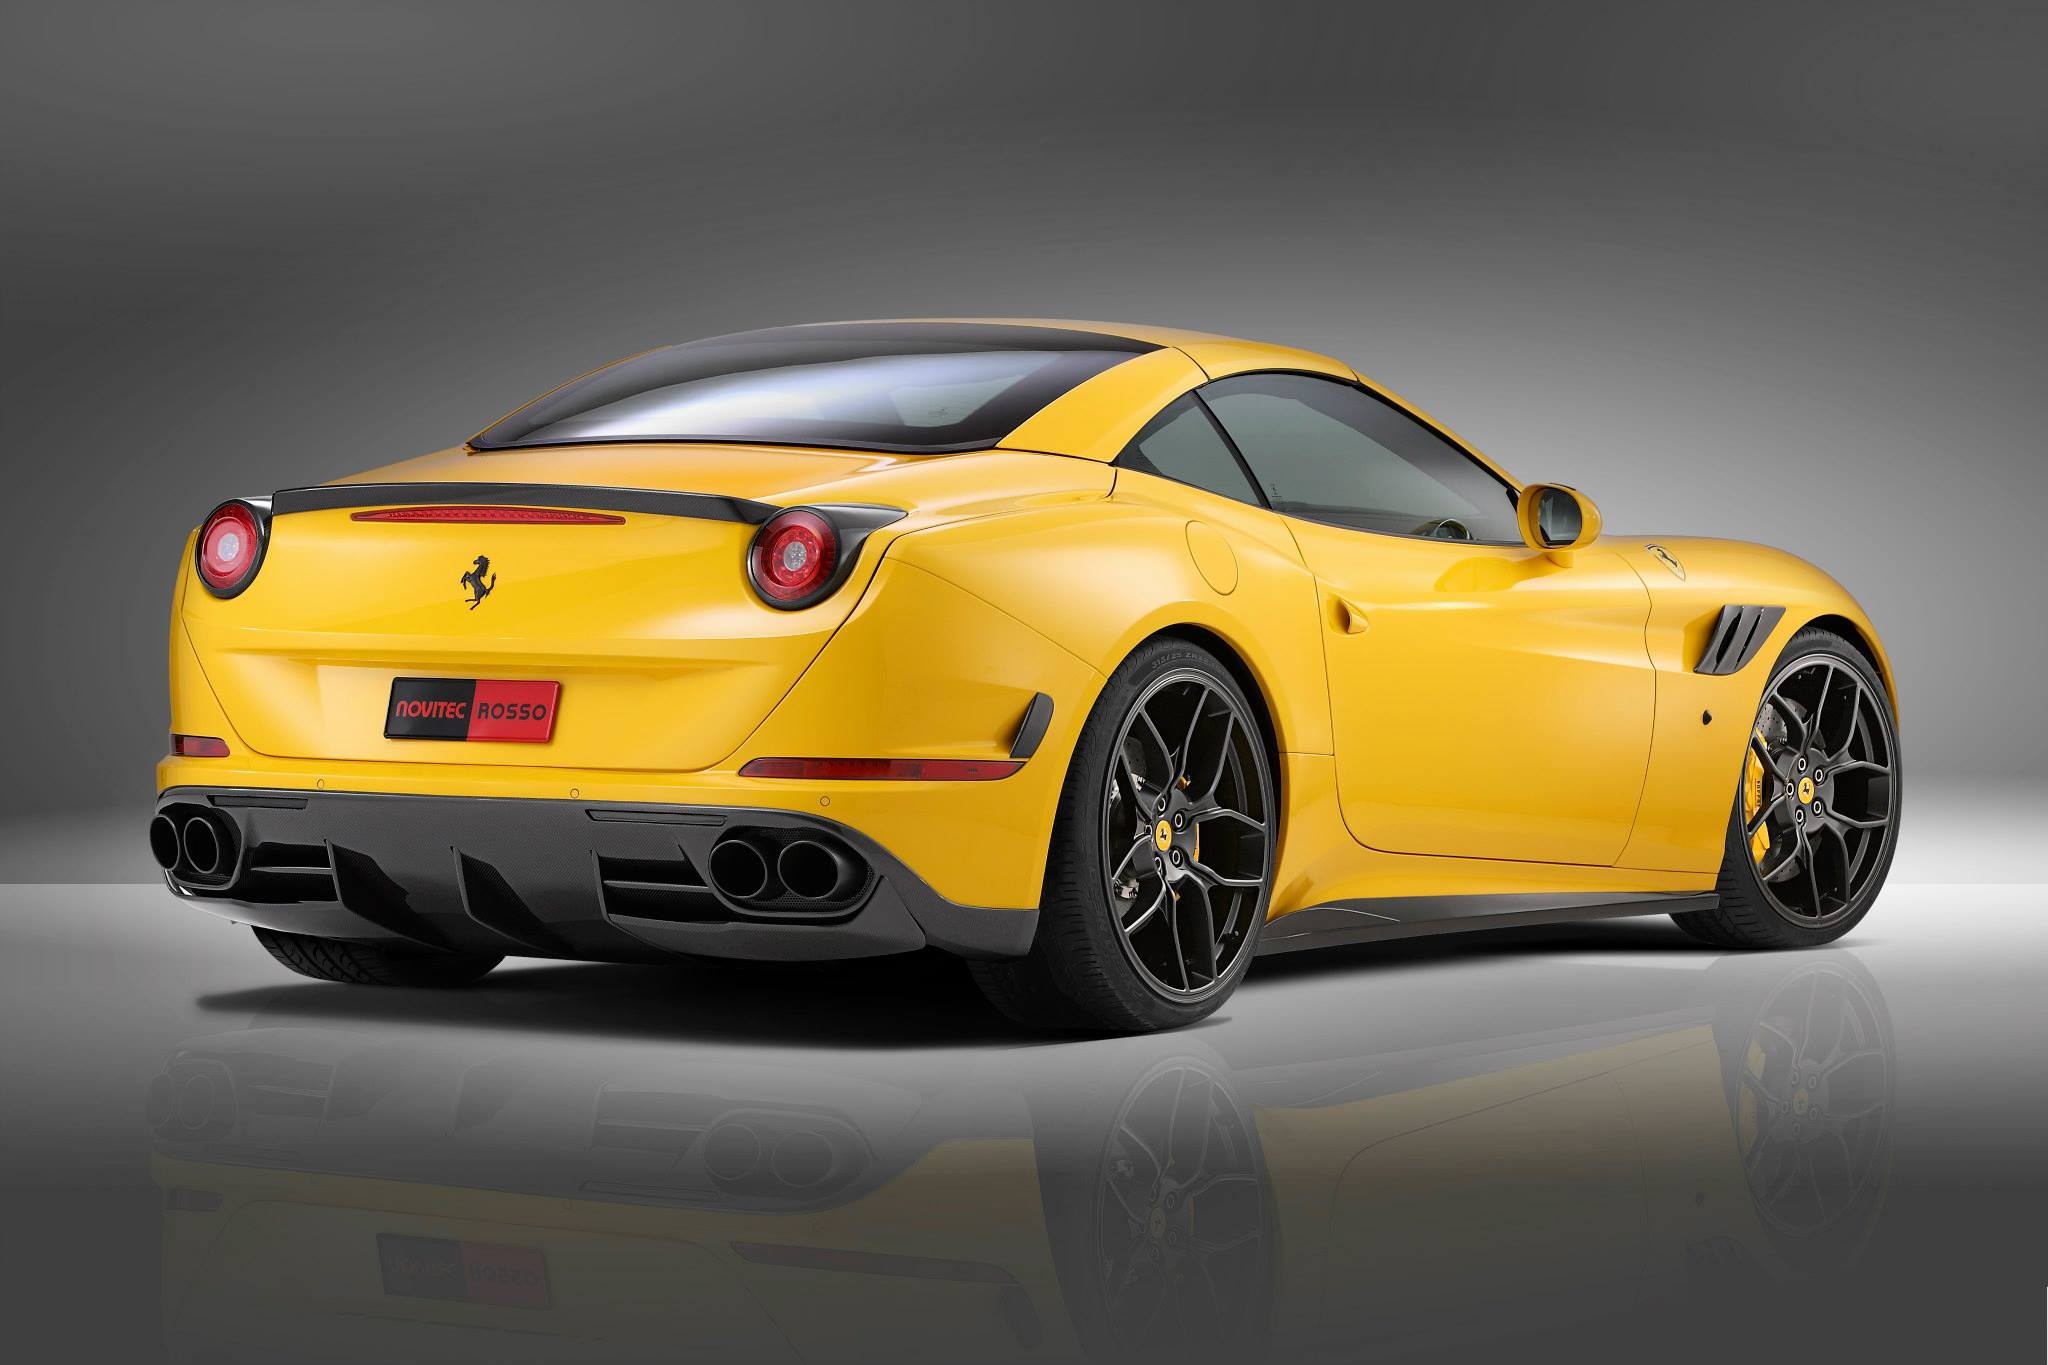 novitec rosso ferrari california t revealed with carbon kit more power autoevolution. Black Bedroom Furniture Sets. Home Design Ideas